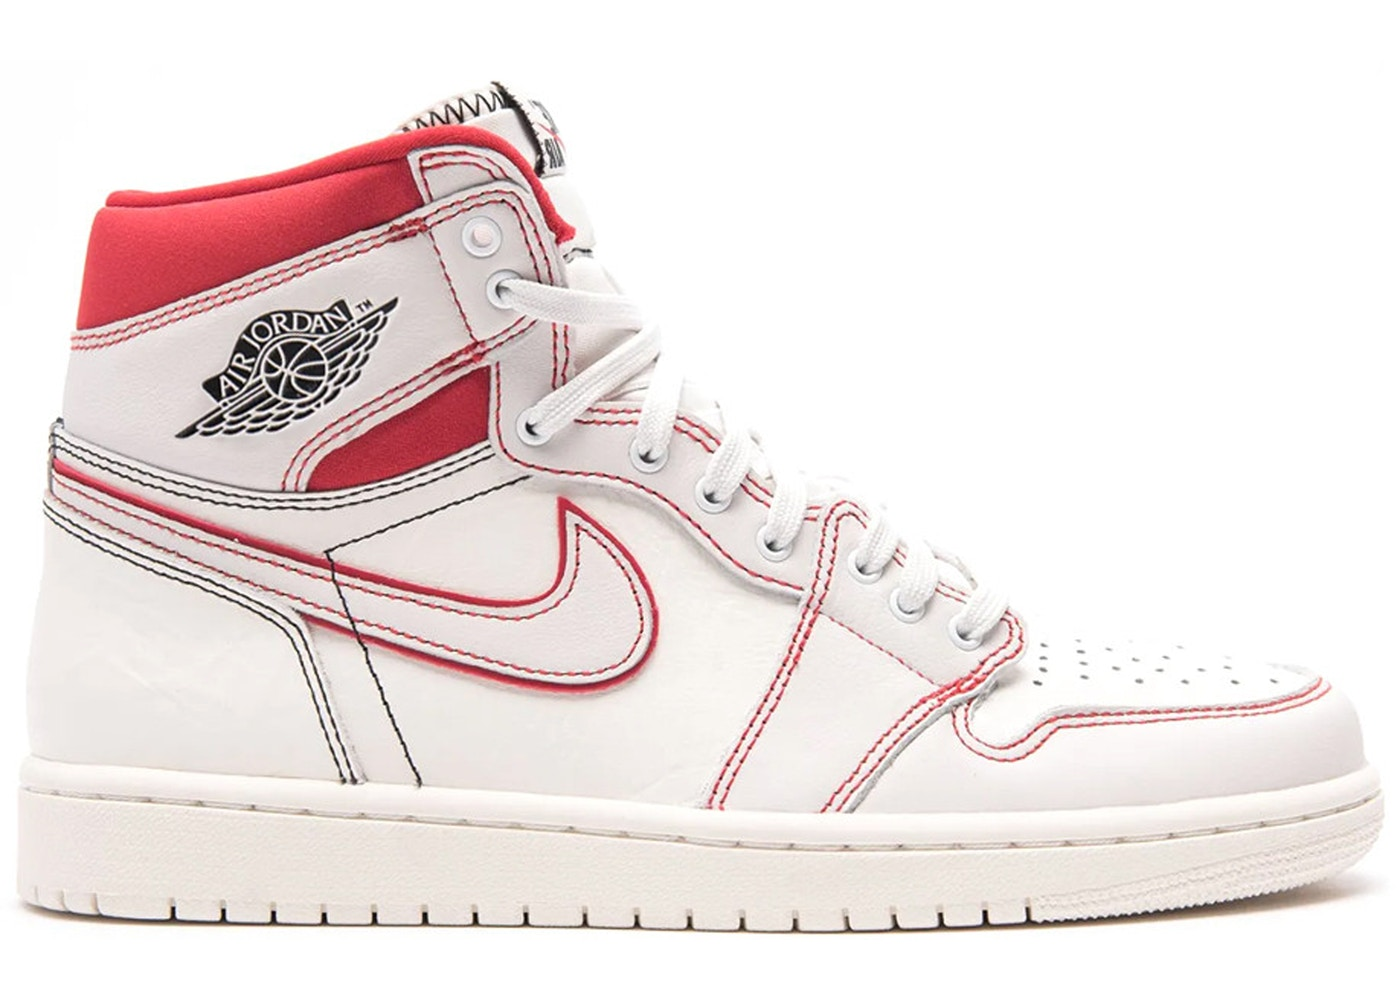 Jordan 1 Retro High Phantom Gym Red - 555088-160 184d14f4b